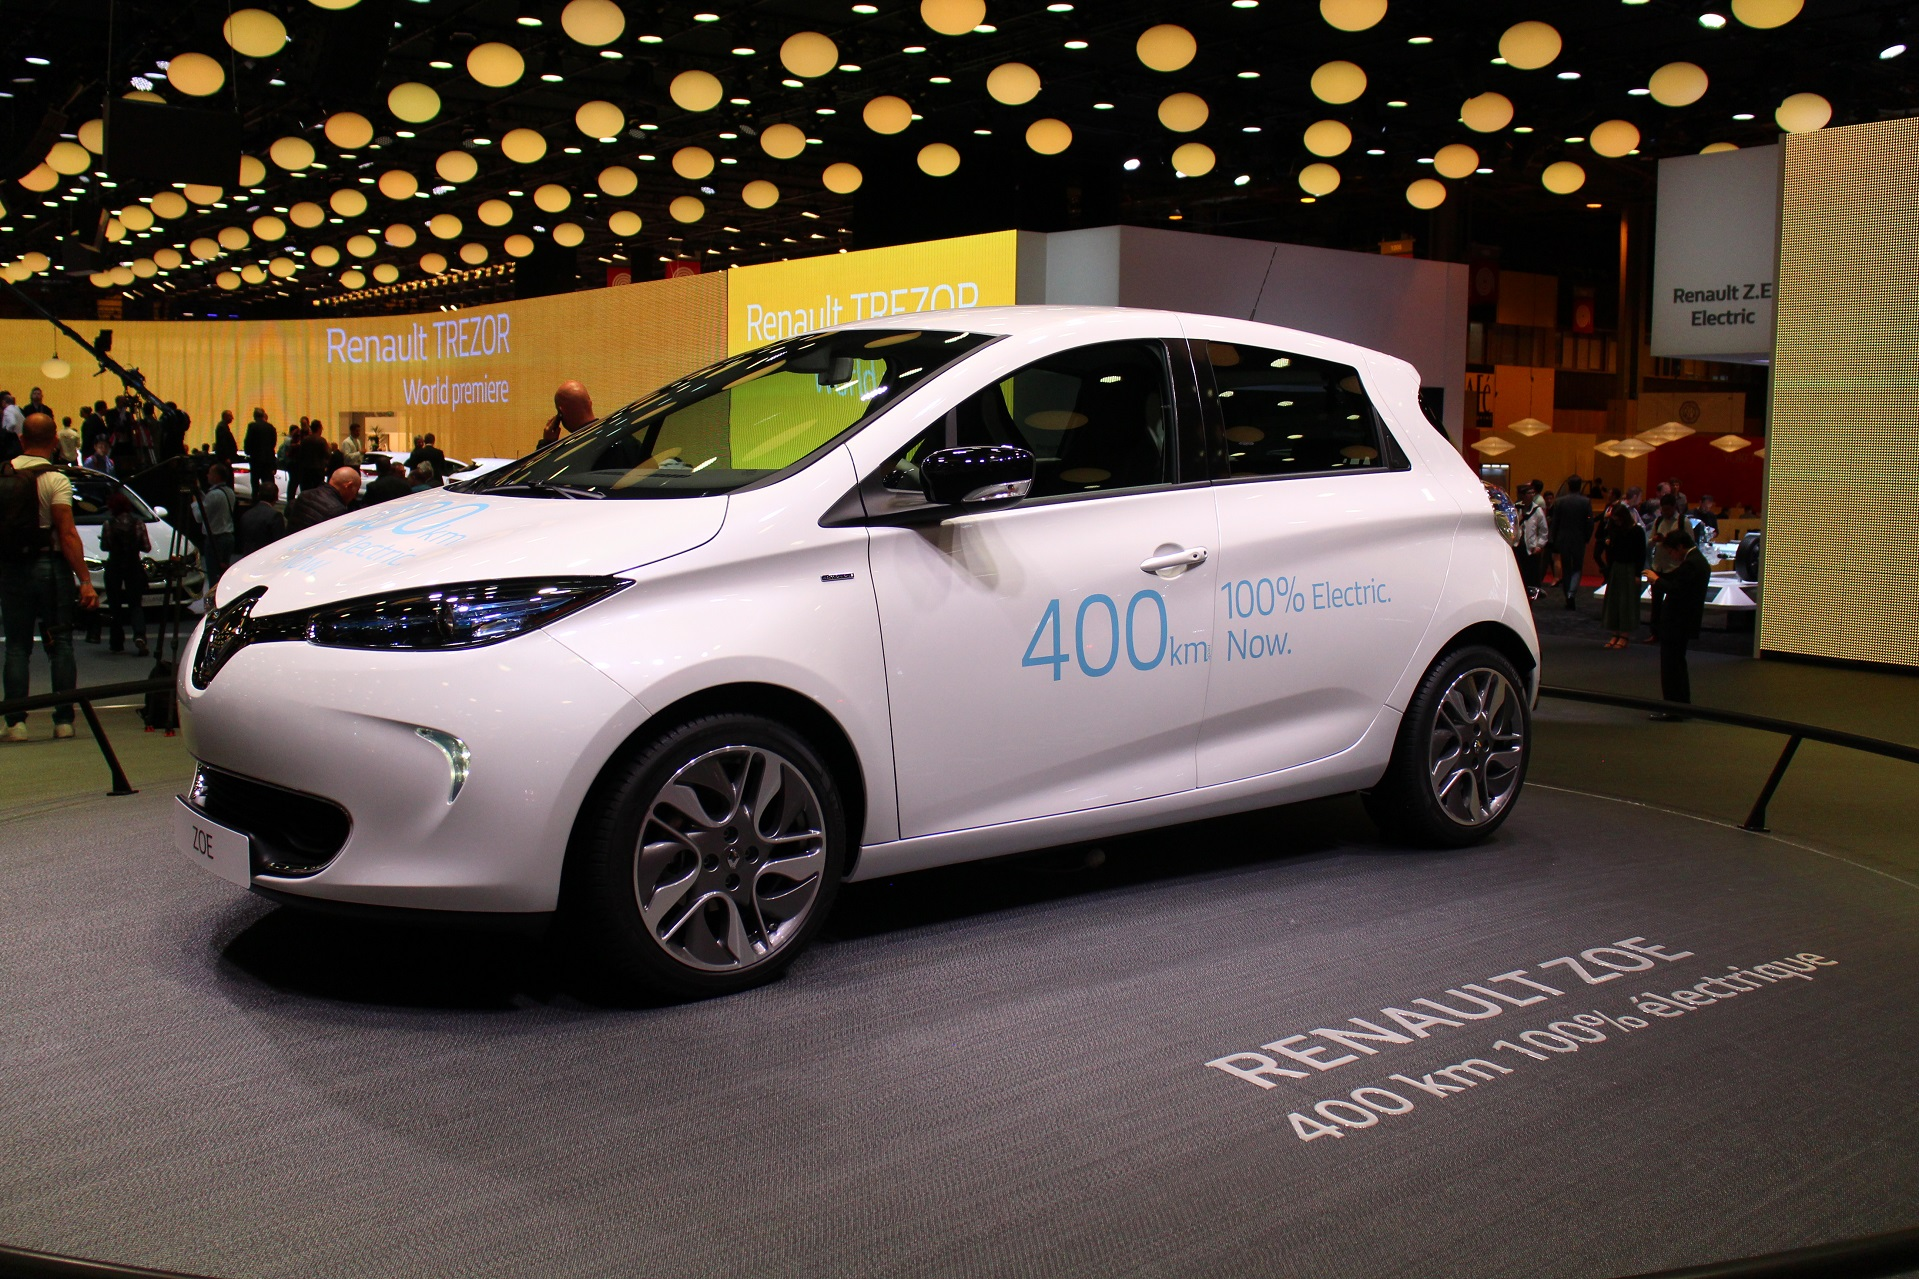 renault zoe electric car owners  double  range  upgrading leased batteries